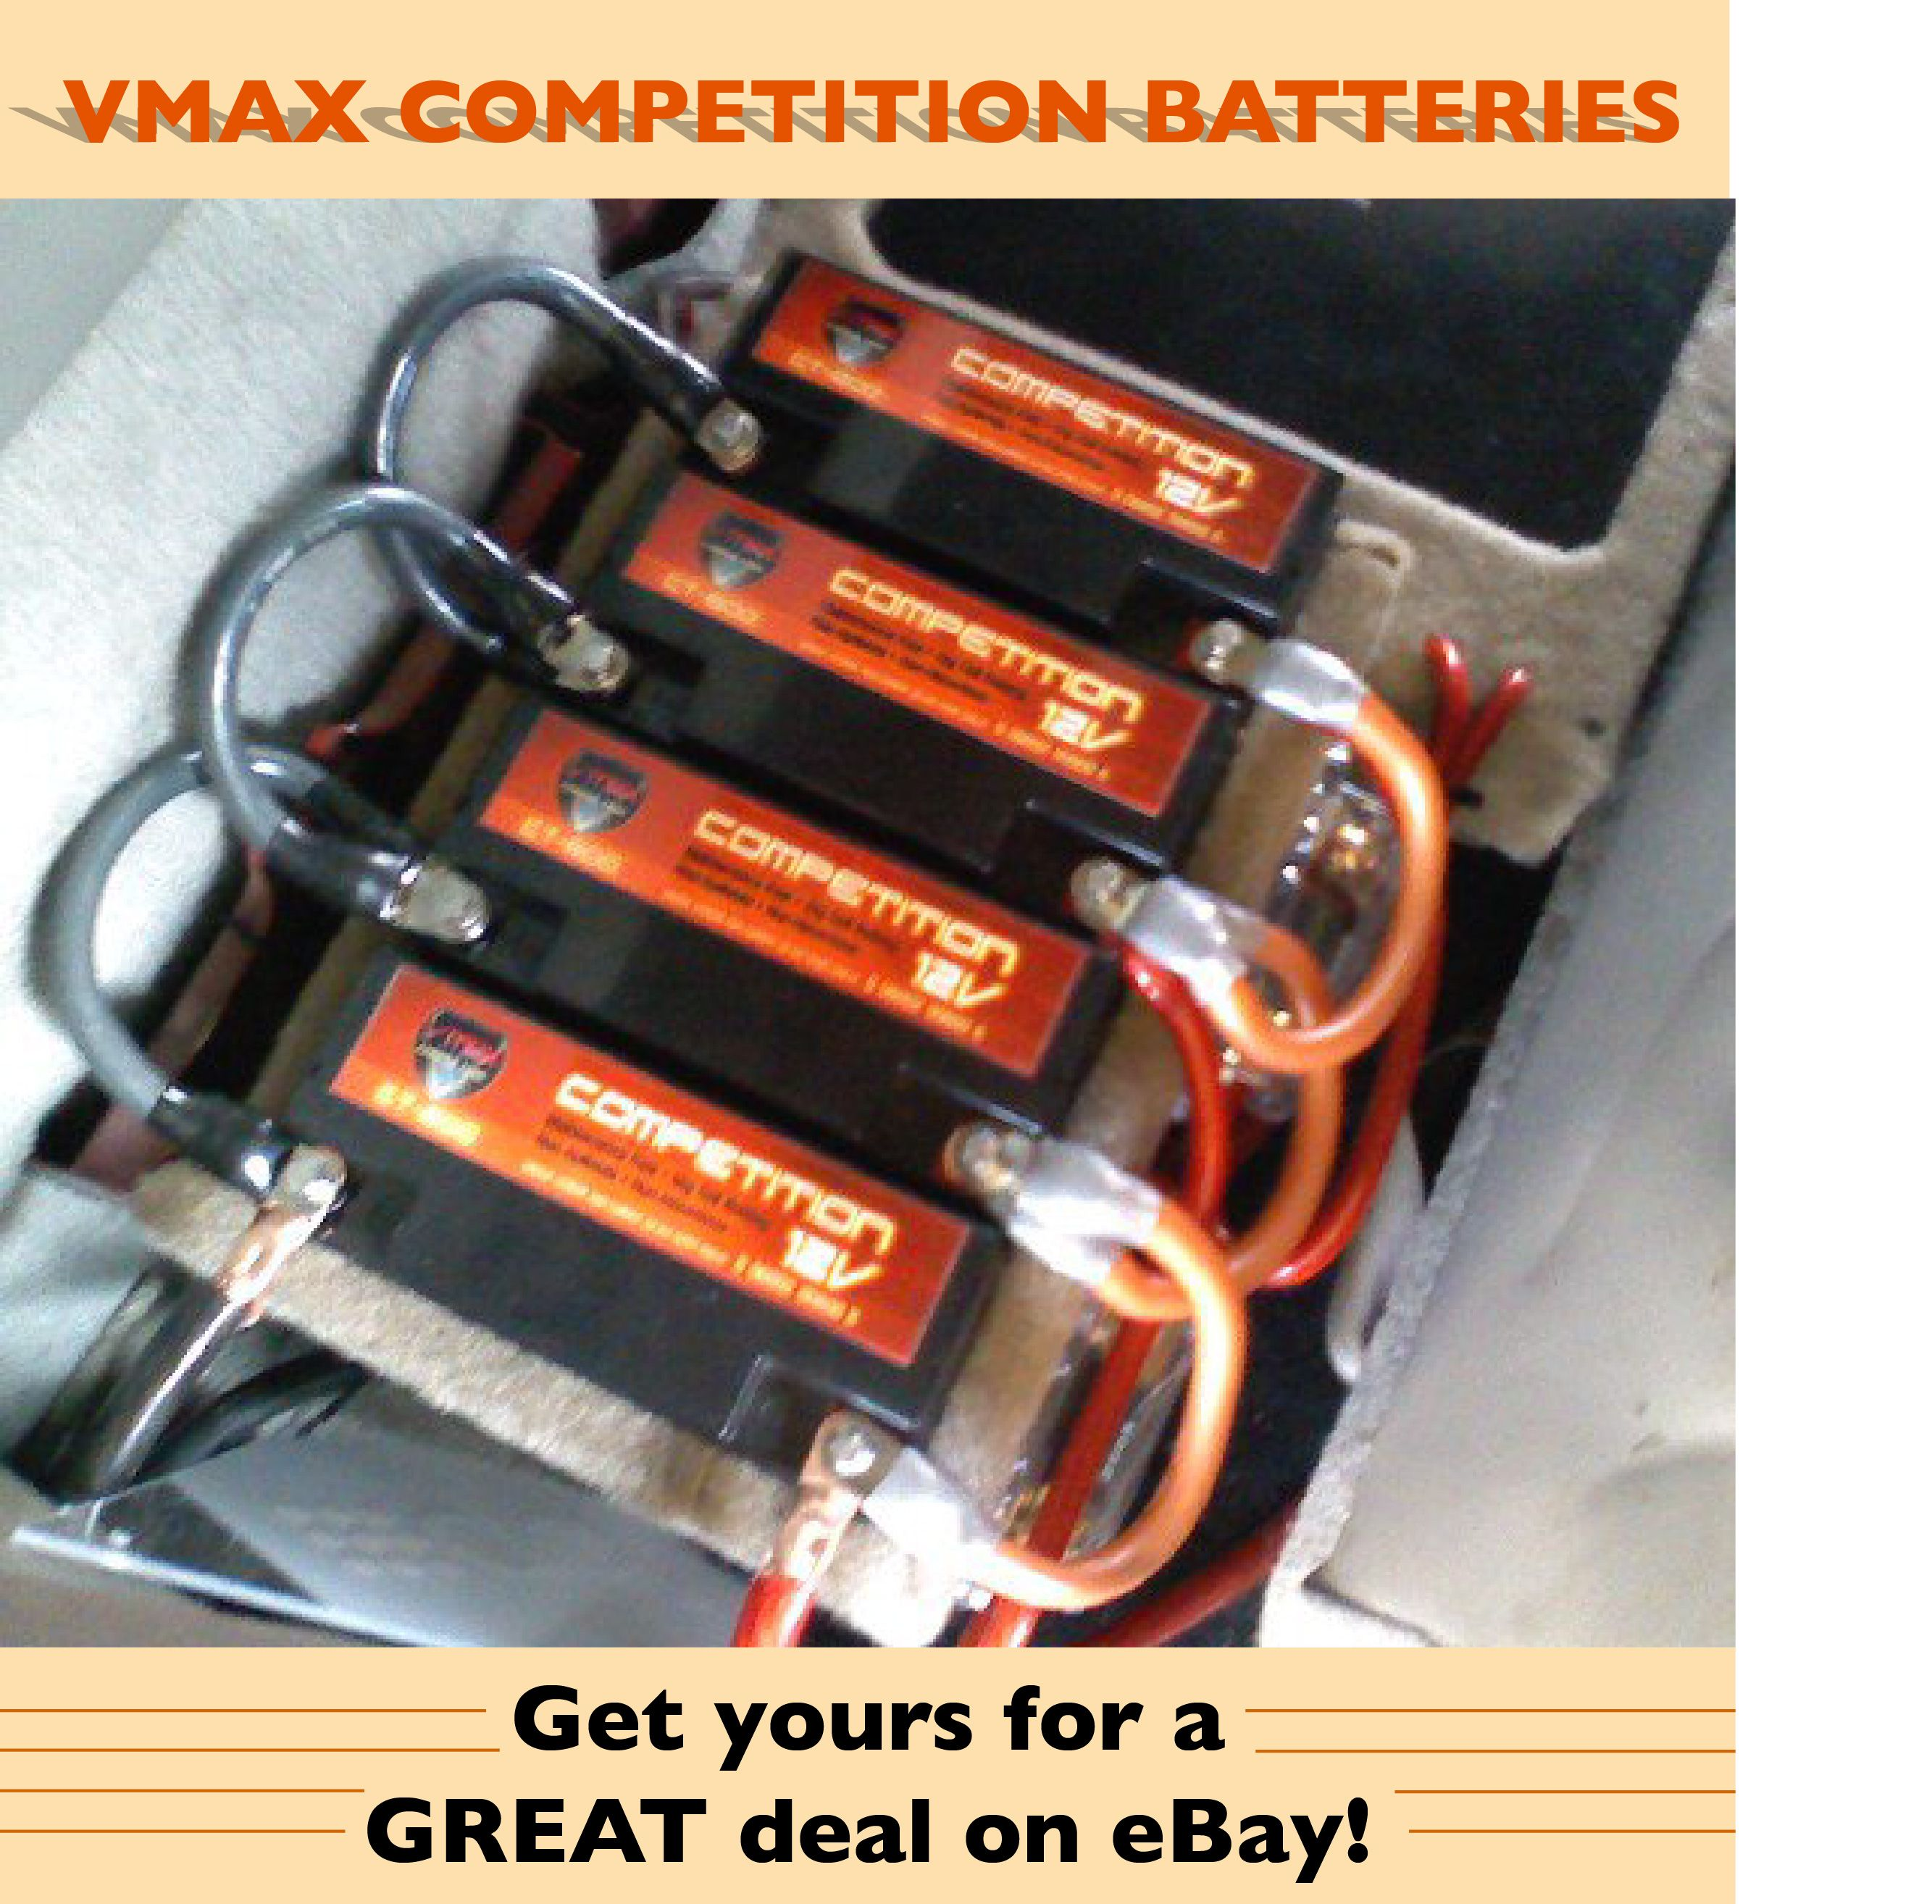 Pin By Bargainshore On High Performance Agm Batteries In 2018 Caltric Wiring Diagram Vmax Competition For Car Audio Systems Http